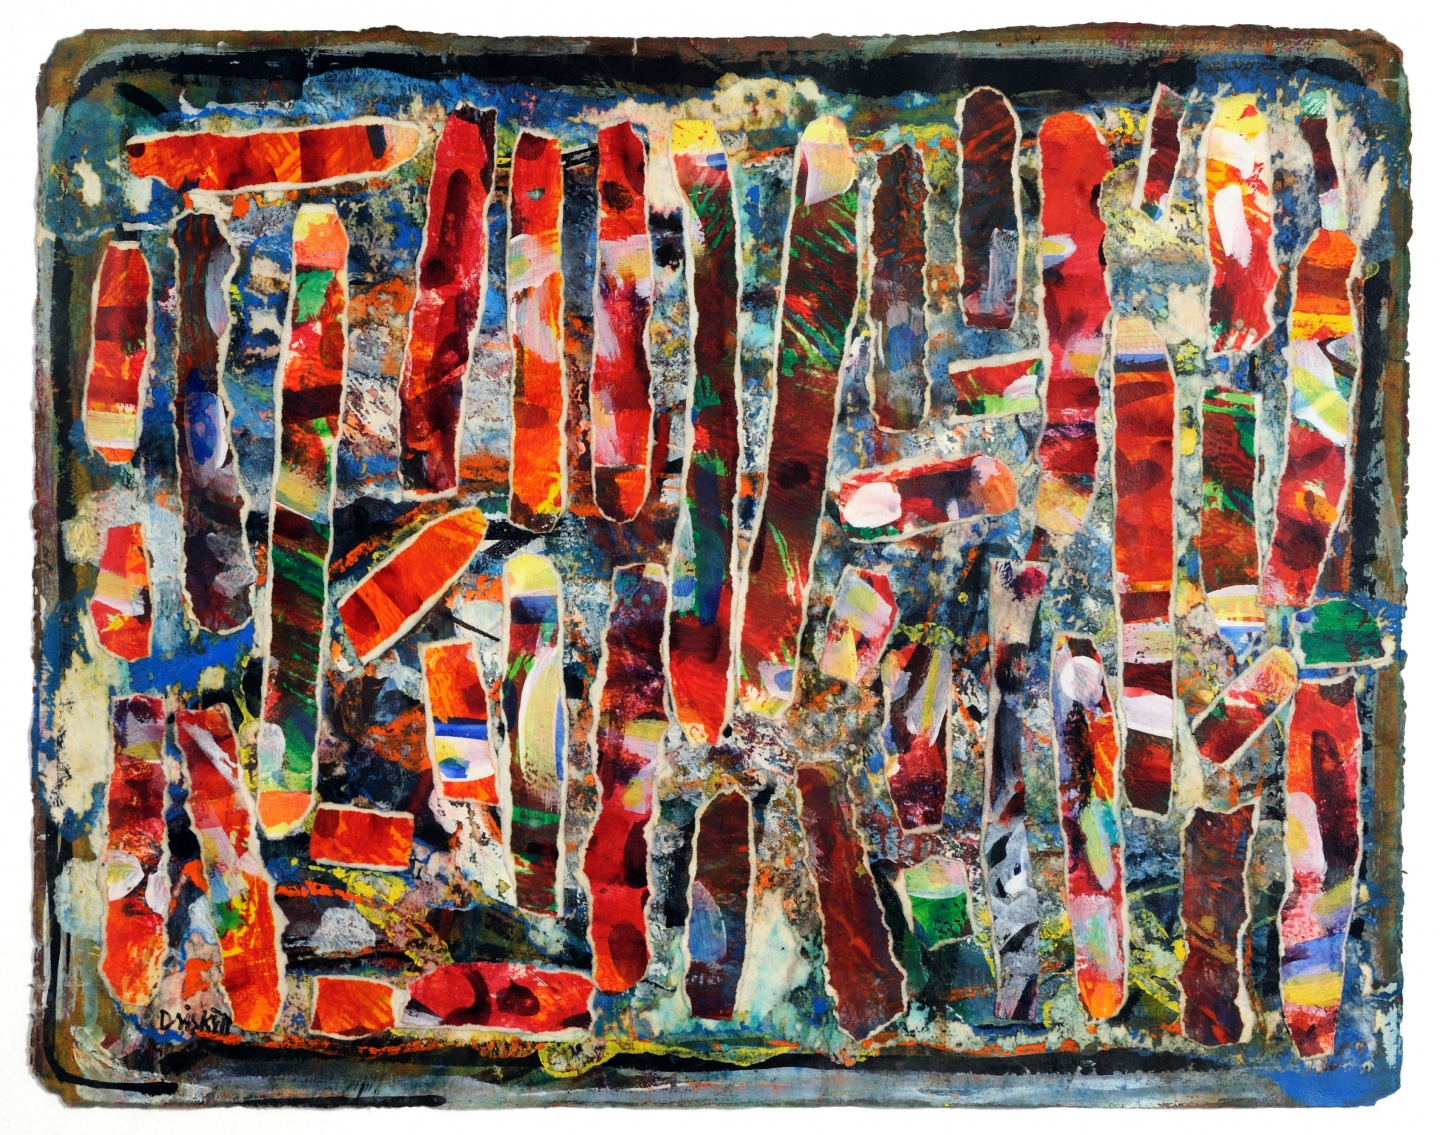 DAVID DRISKELL Resonance Paintings, 1965-2002